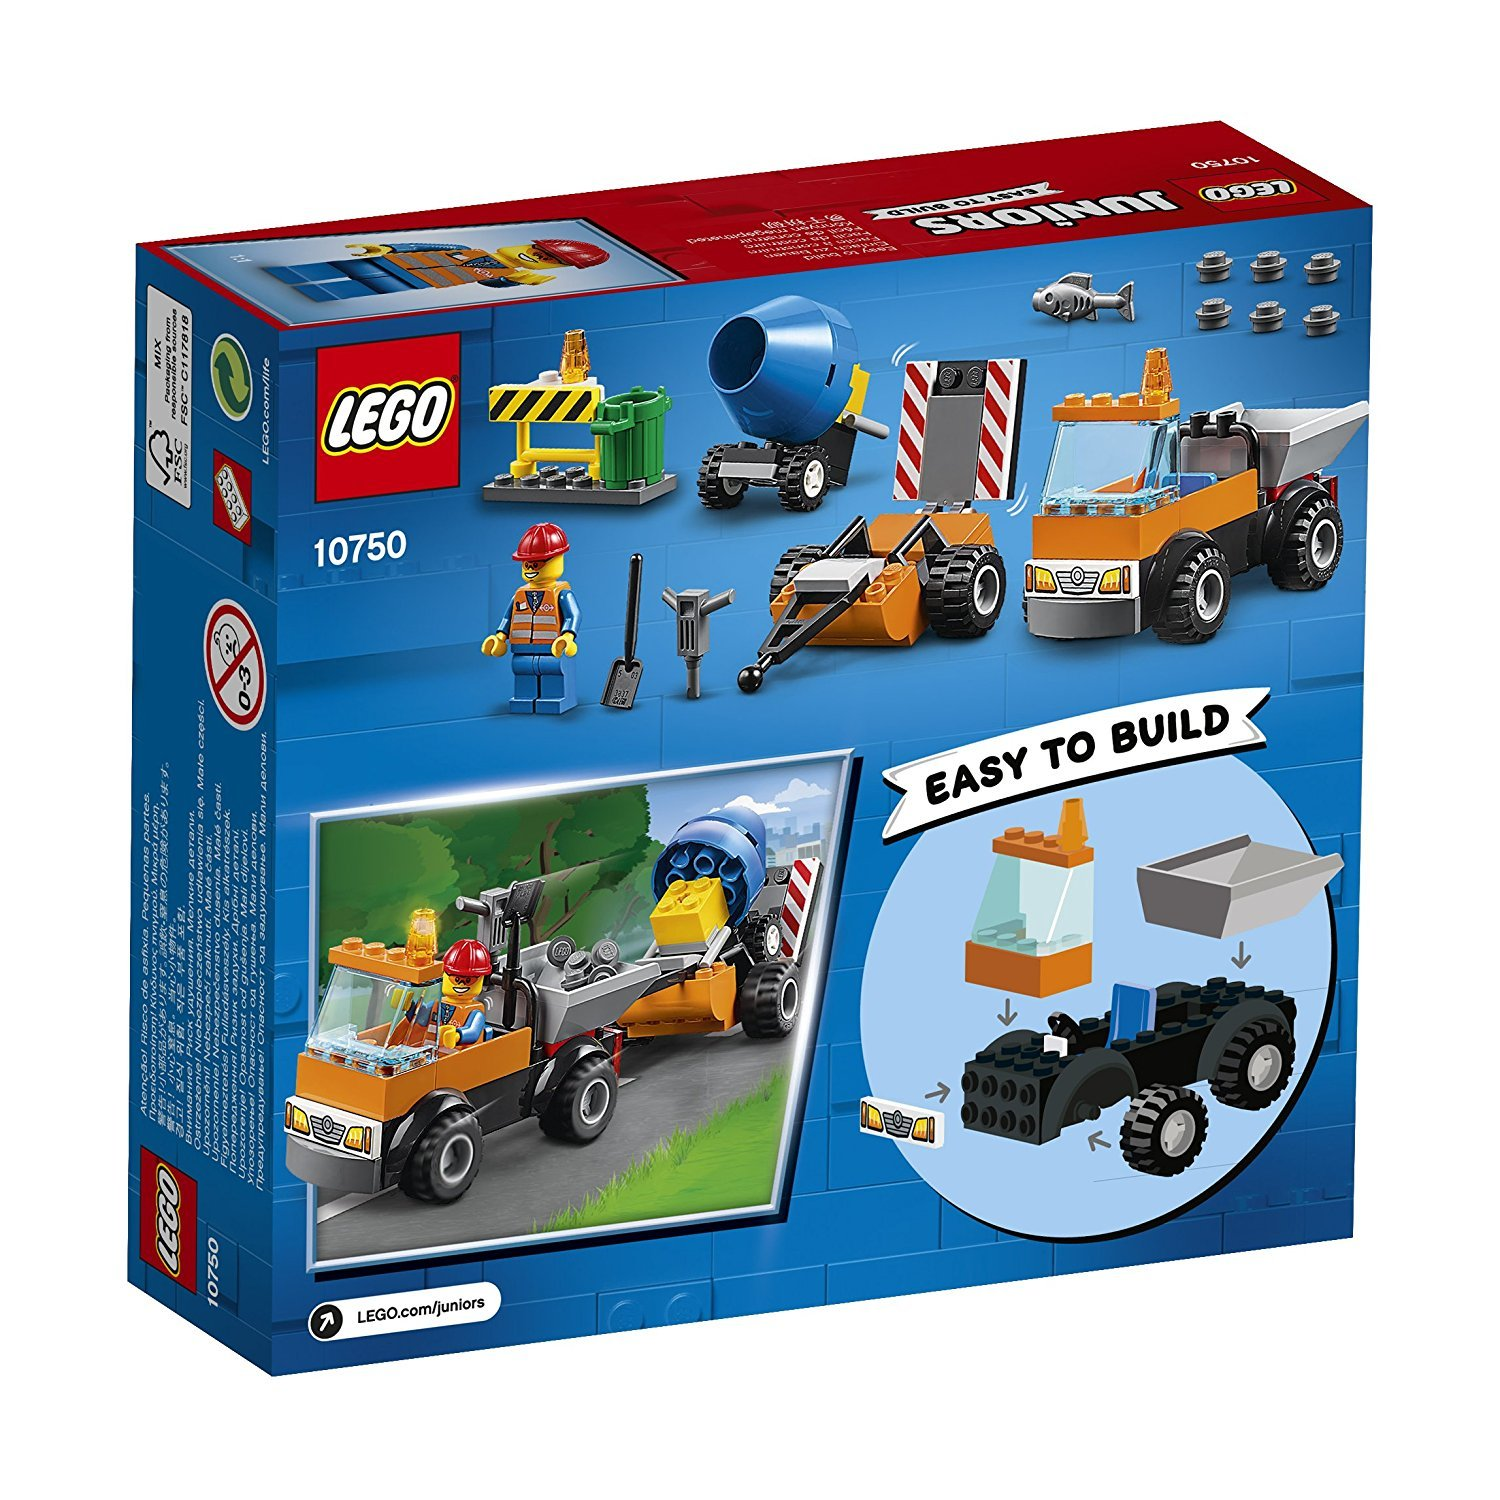 Lego Uk 10750 Juniors Road Repair Truck Toy For Boys And For Girls